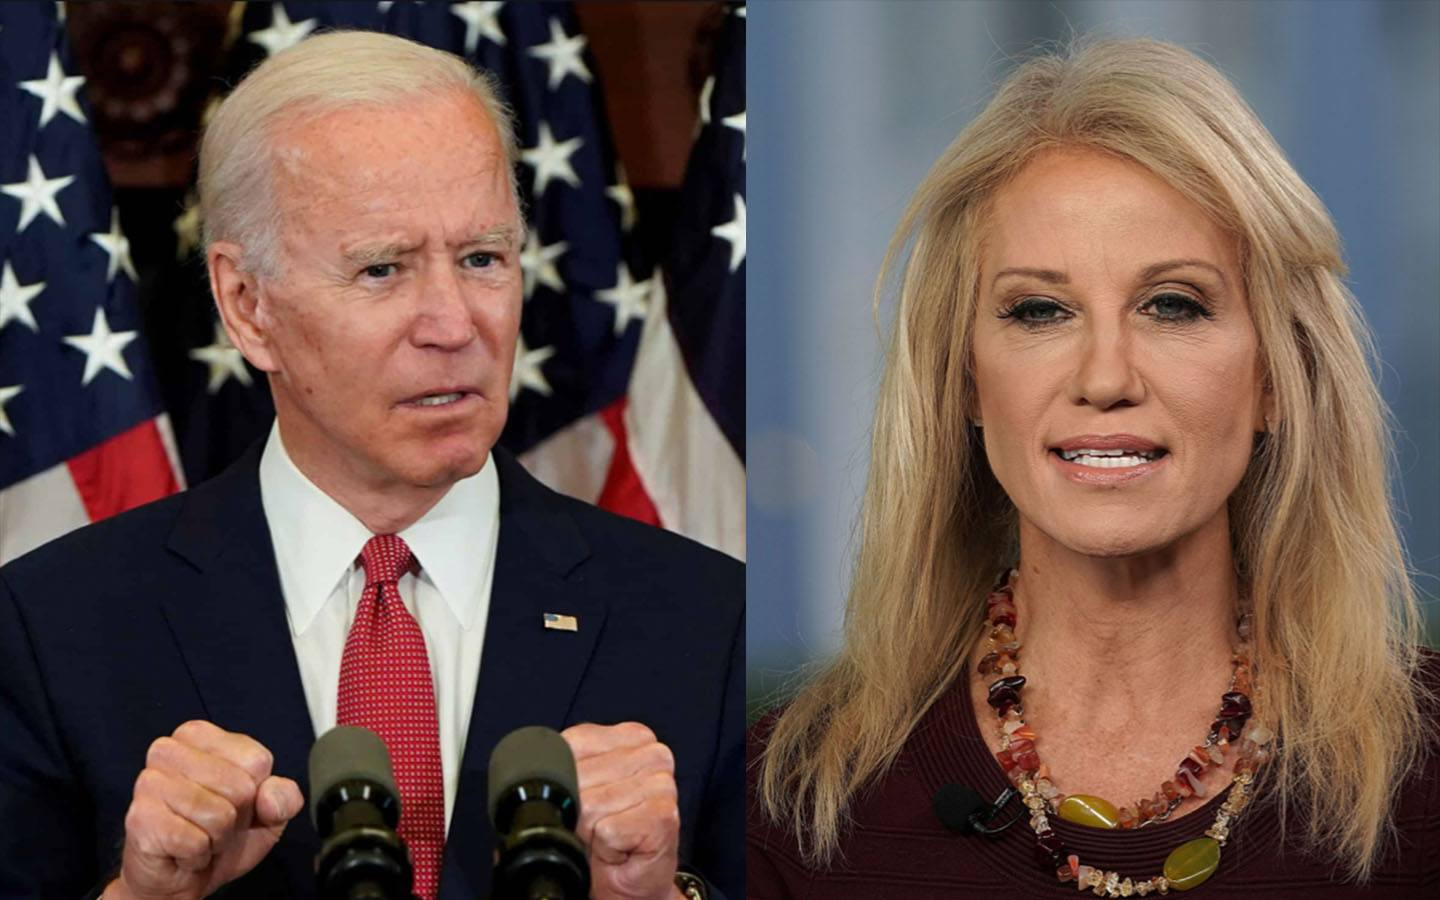 Kellyanne Hits Back at 'Creepy' Joe for Twisting Her Words – 'You Lied. And Don't Sniff My Hair, Either.'